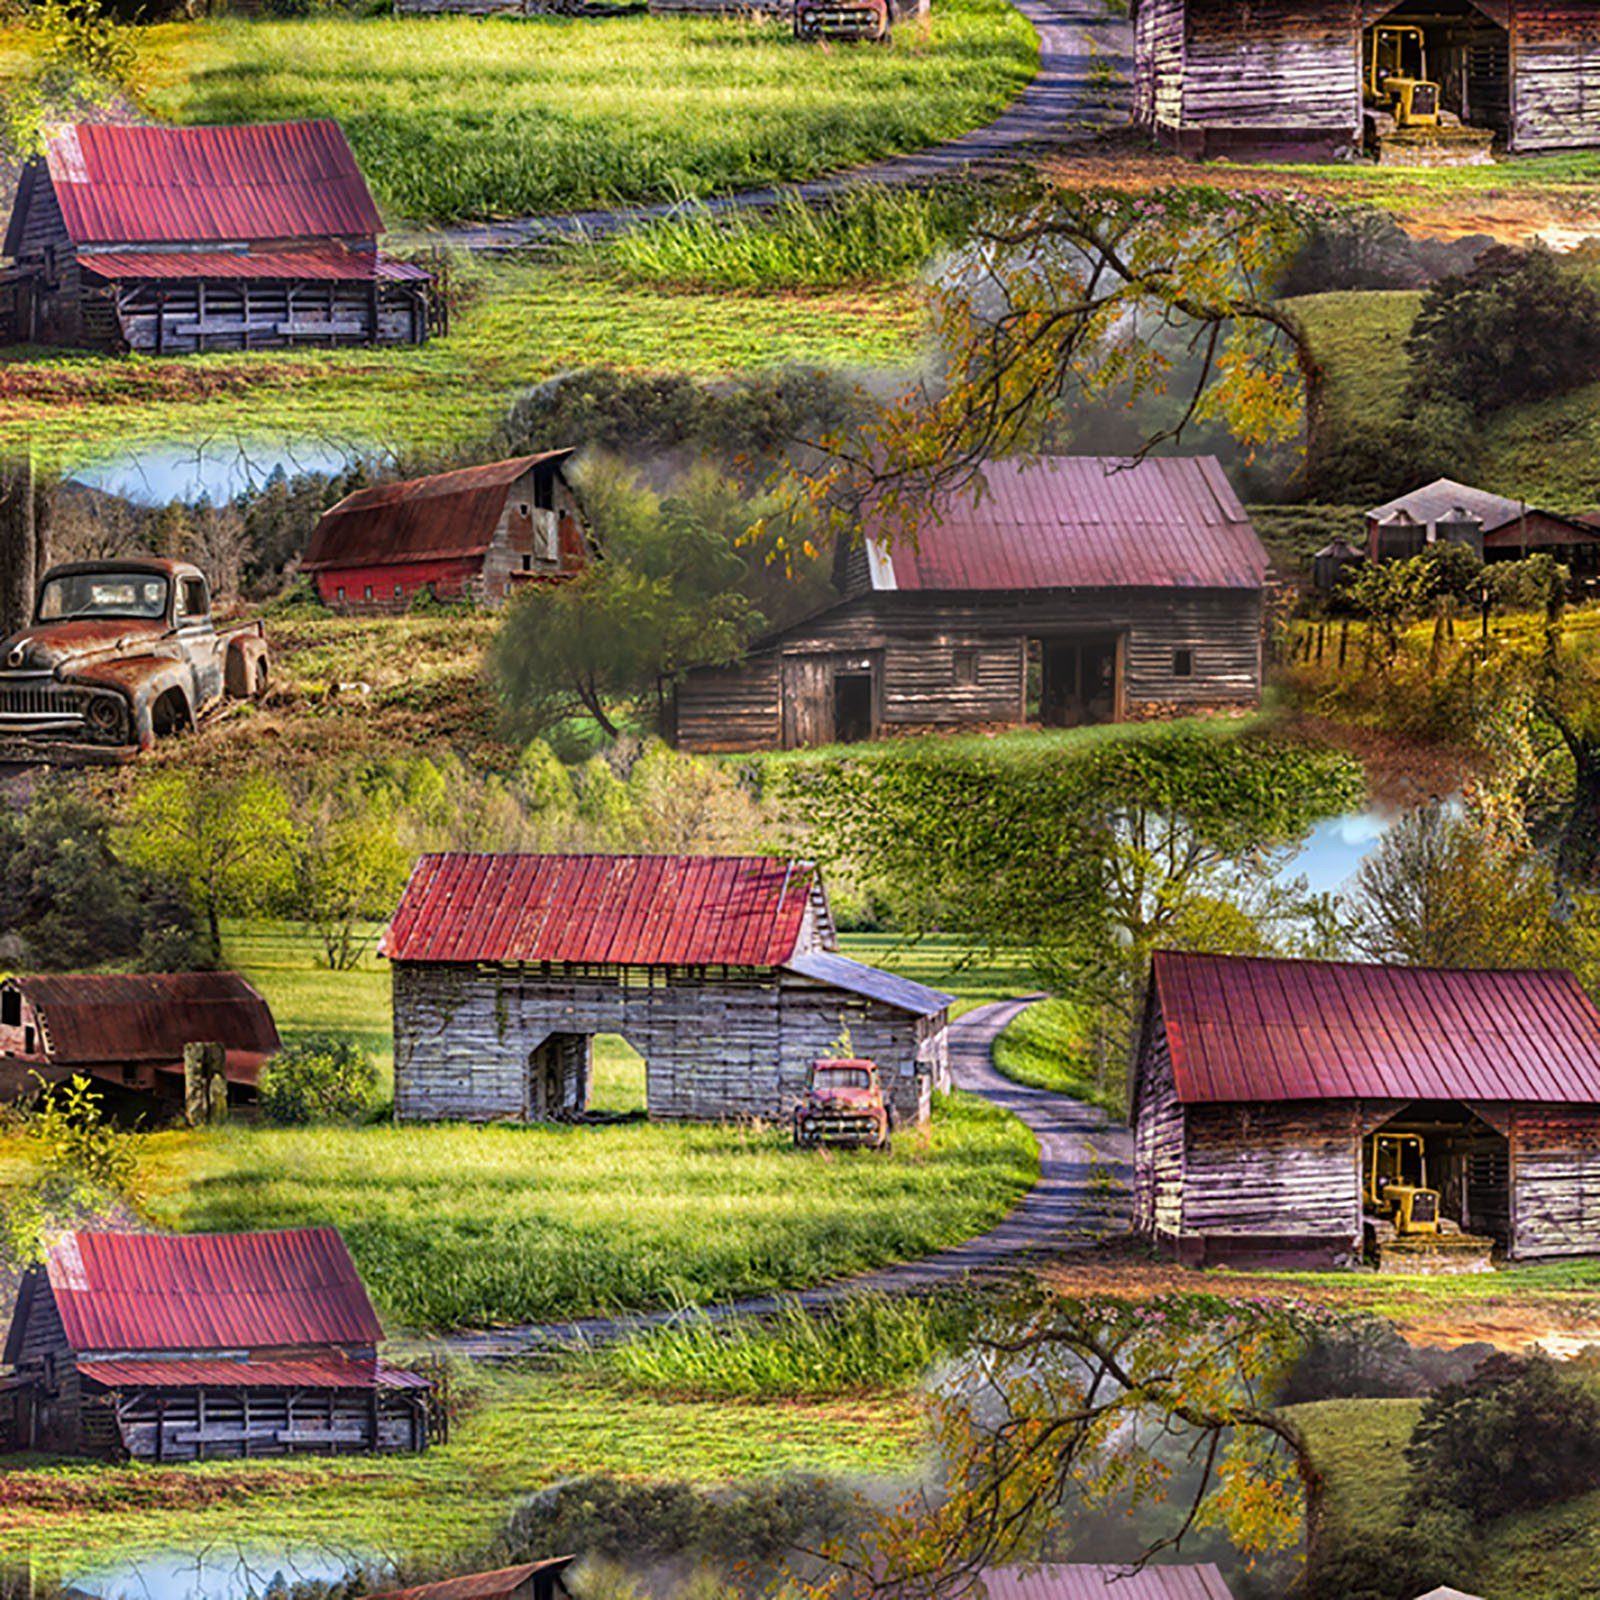 David Textiles - Country Animals-DIGITAL-Barns & Tractors - 3399-7C-1